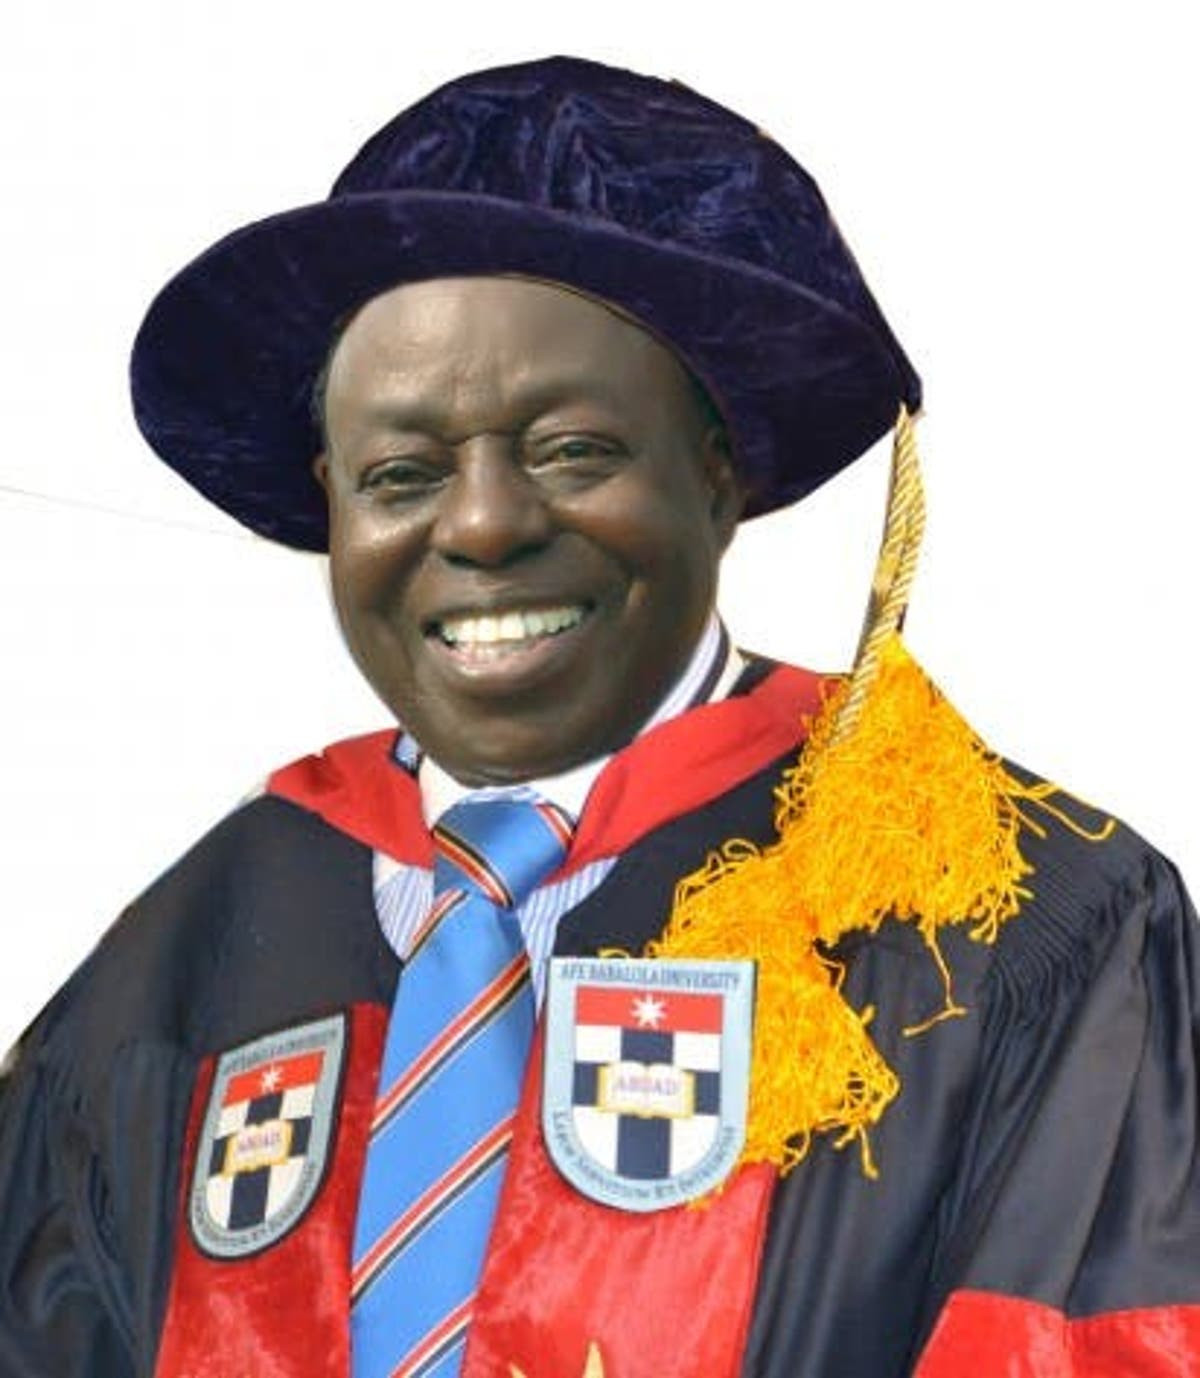 Nigeria is producing graduates whose education makes them more dangerous than uneducated people - Afe Babalola